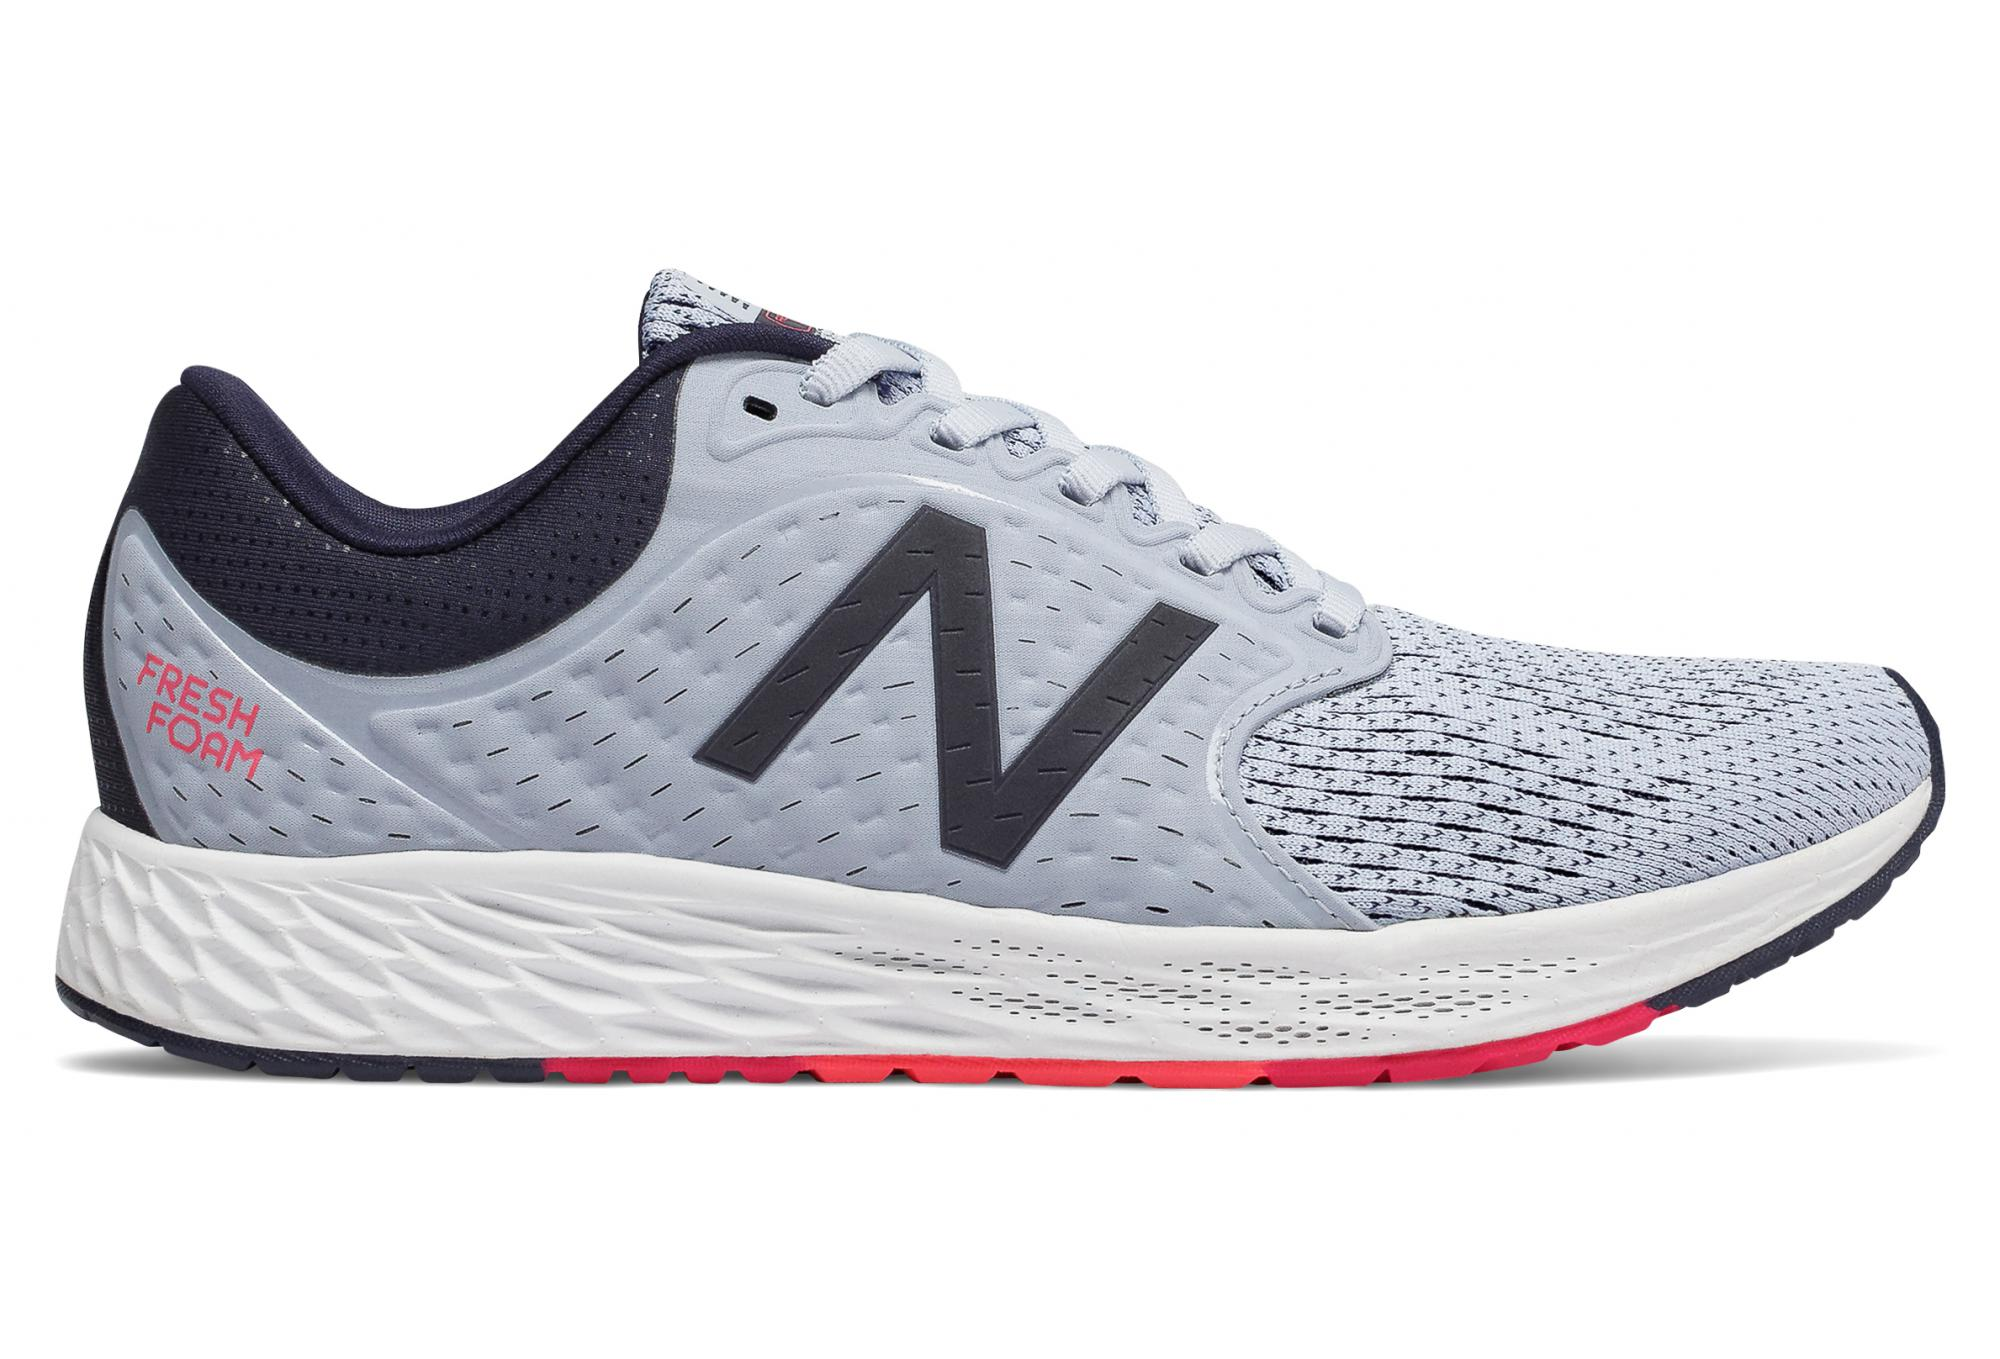 New Balance Chaussures Femme: New Balance Fresh Foam Zante